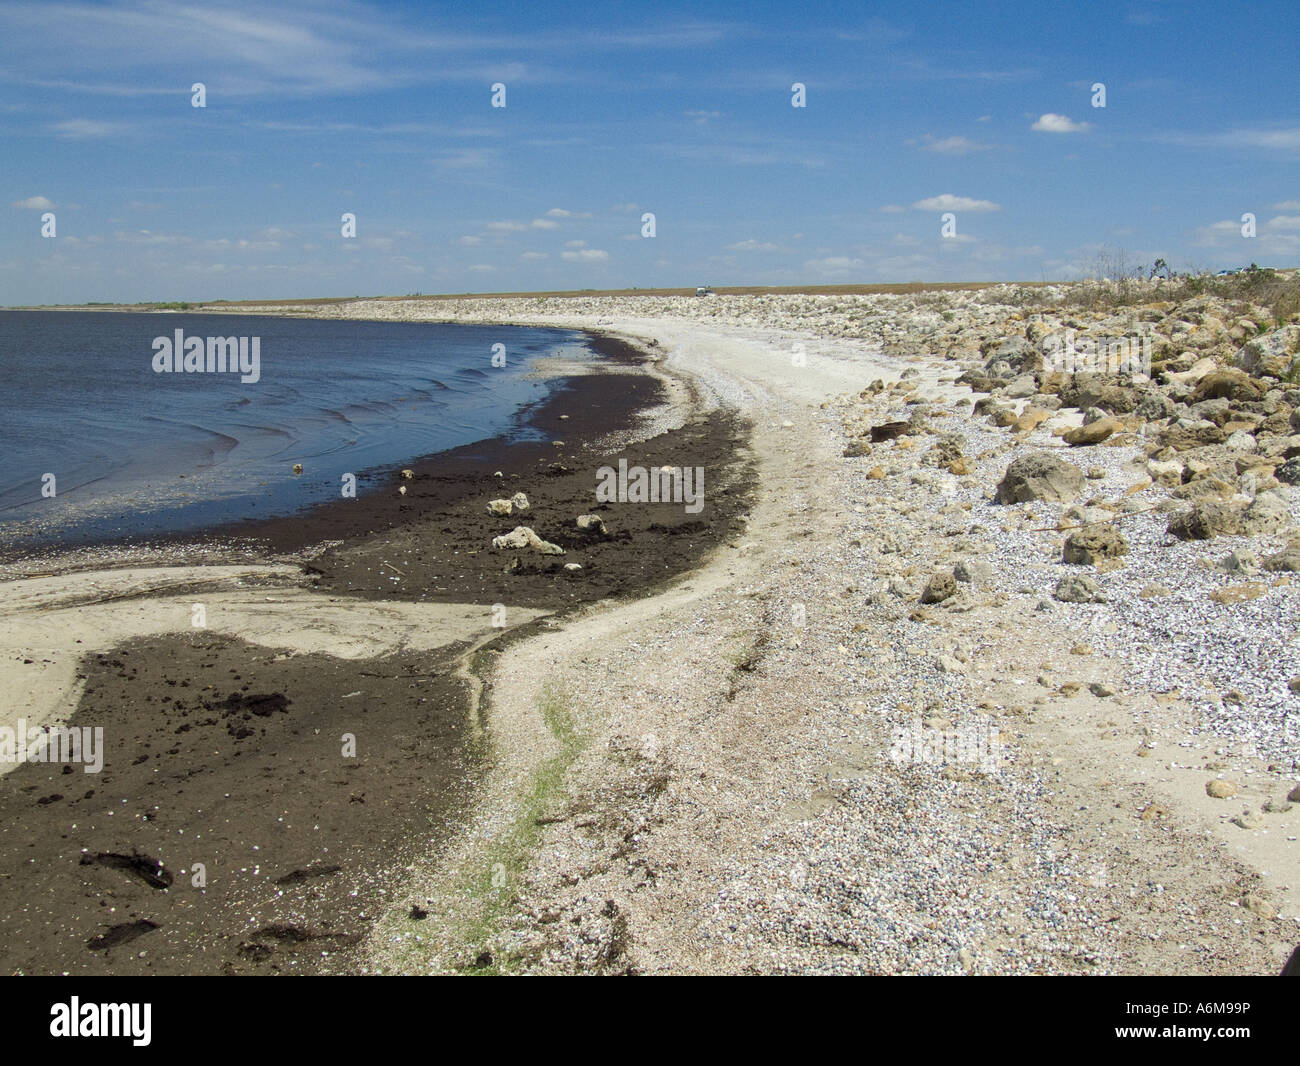 Lake Okeechobee low water levels drought exposed bank Port Mayaca 03 07 - Stock Image